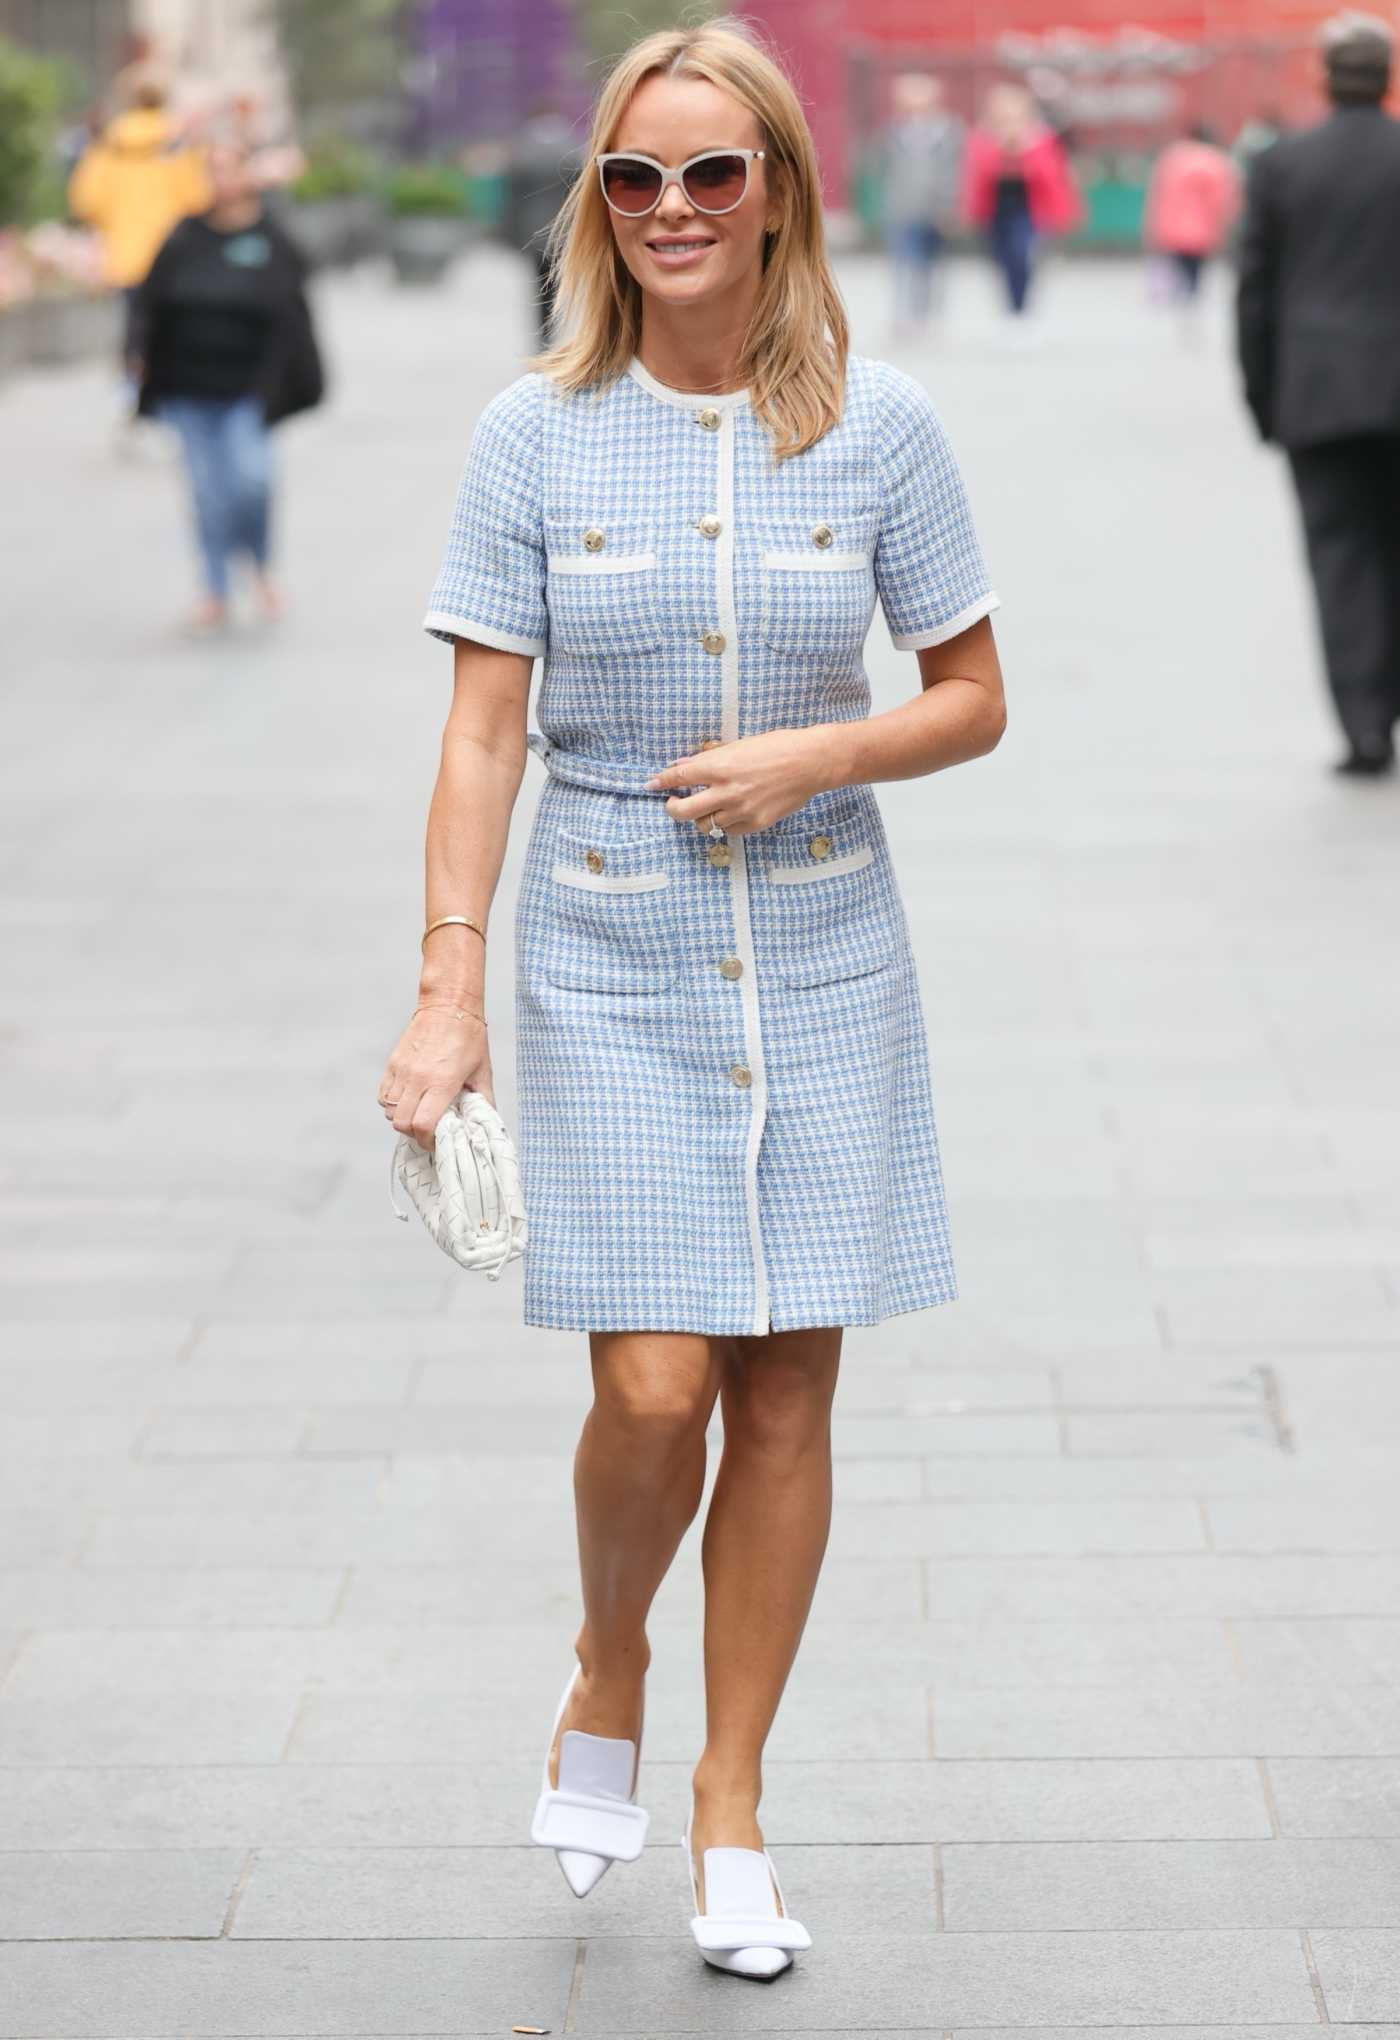 Amanda Holden in a Blue Dress Leaves the Heart Radio in London 09/20/2021